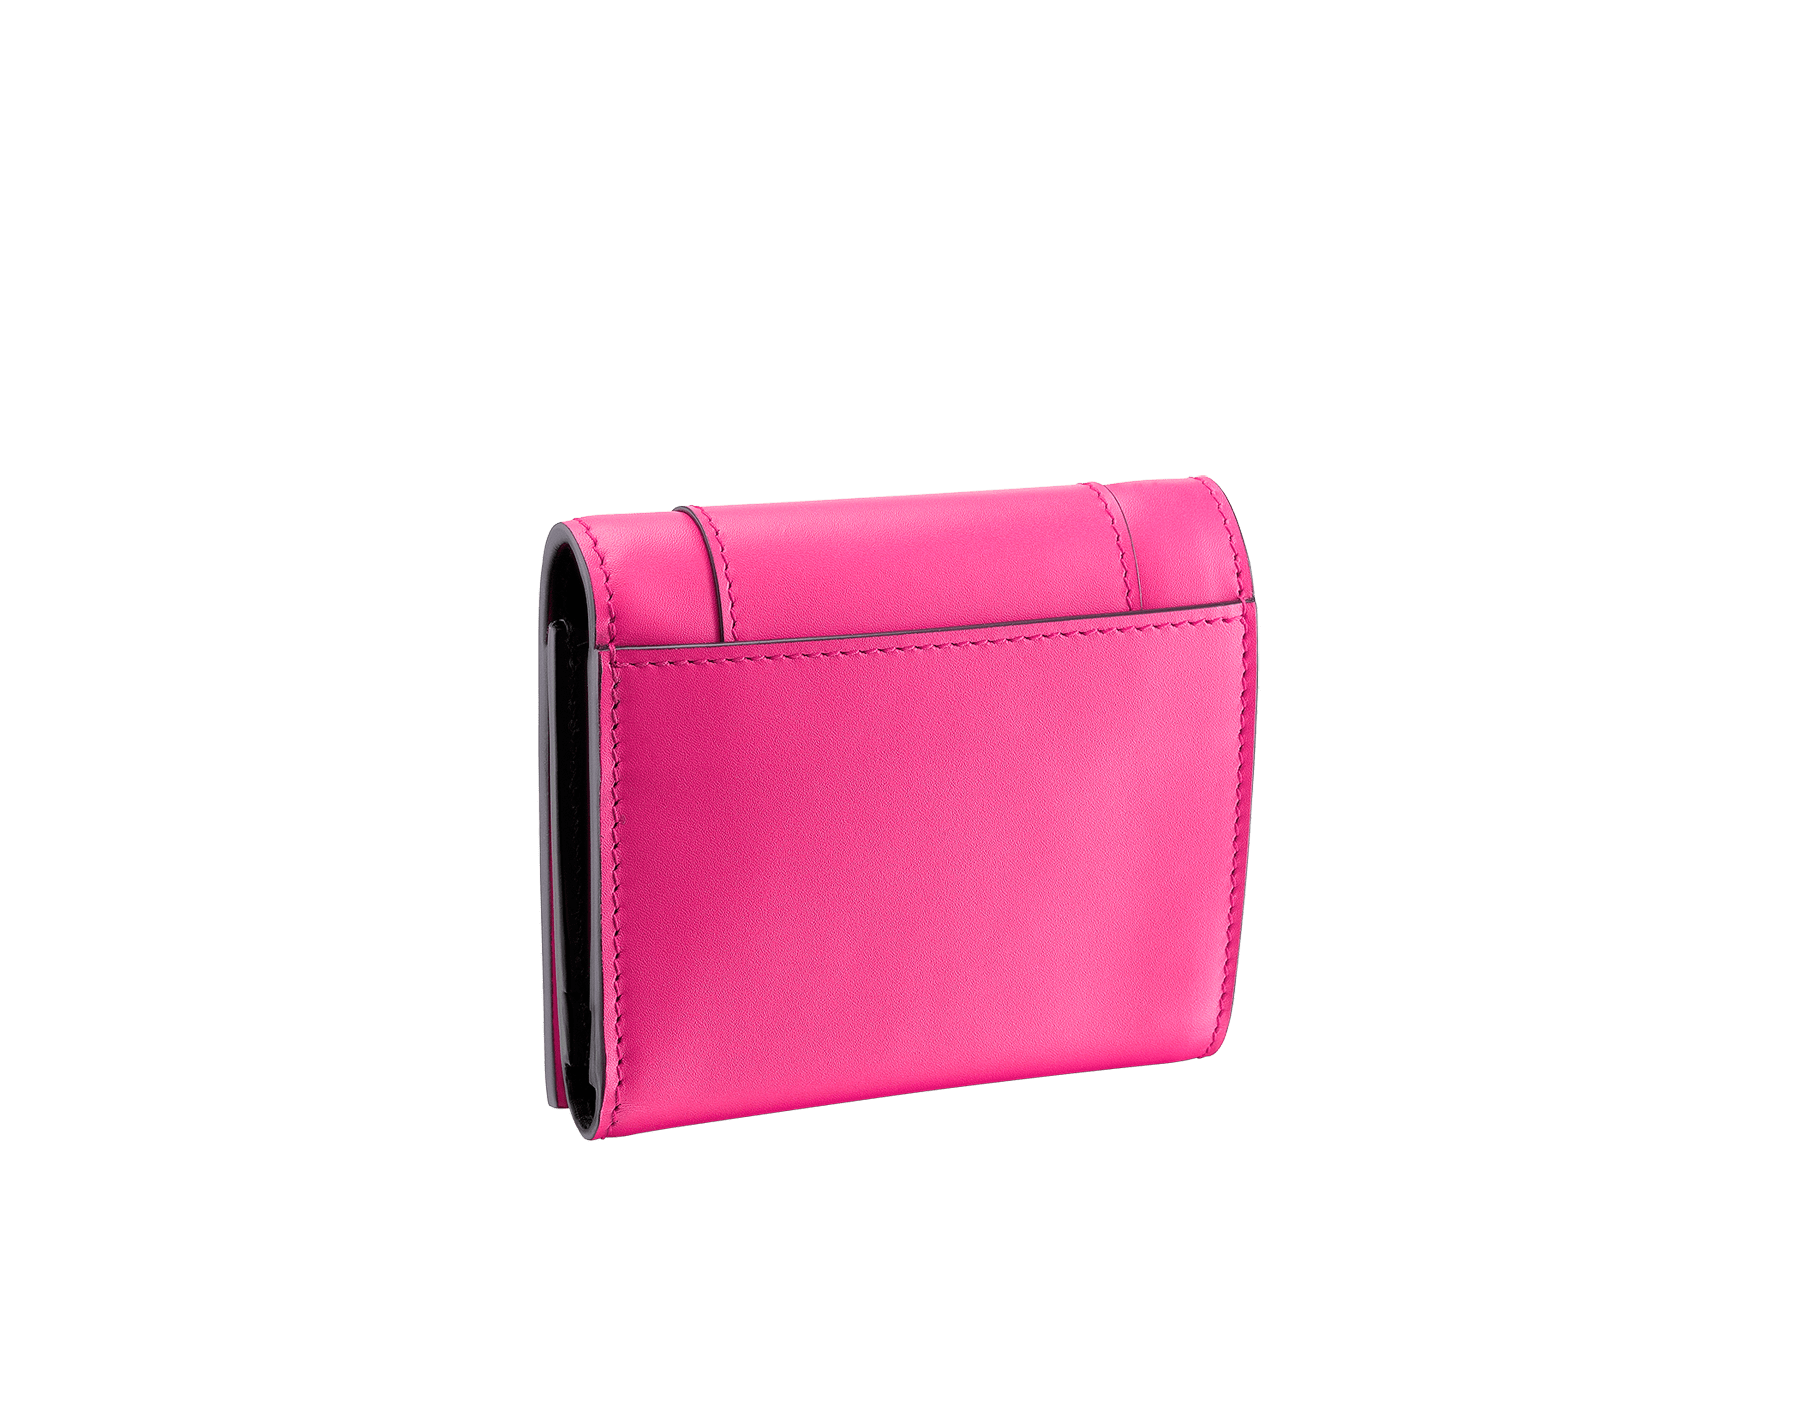 Serpenti Forever super compact wallet in roman garnet and pink spinel calf leather. Iconic snakehead zip puller in black and white enamel, with green malachite enamel eyes. SEA-SUPERCOMPACT-CLa image 3